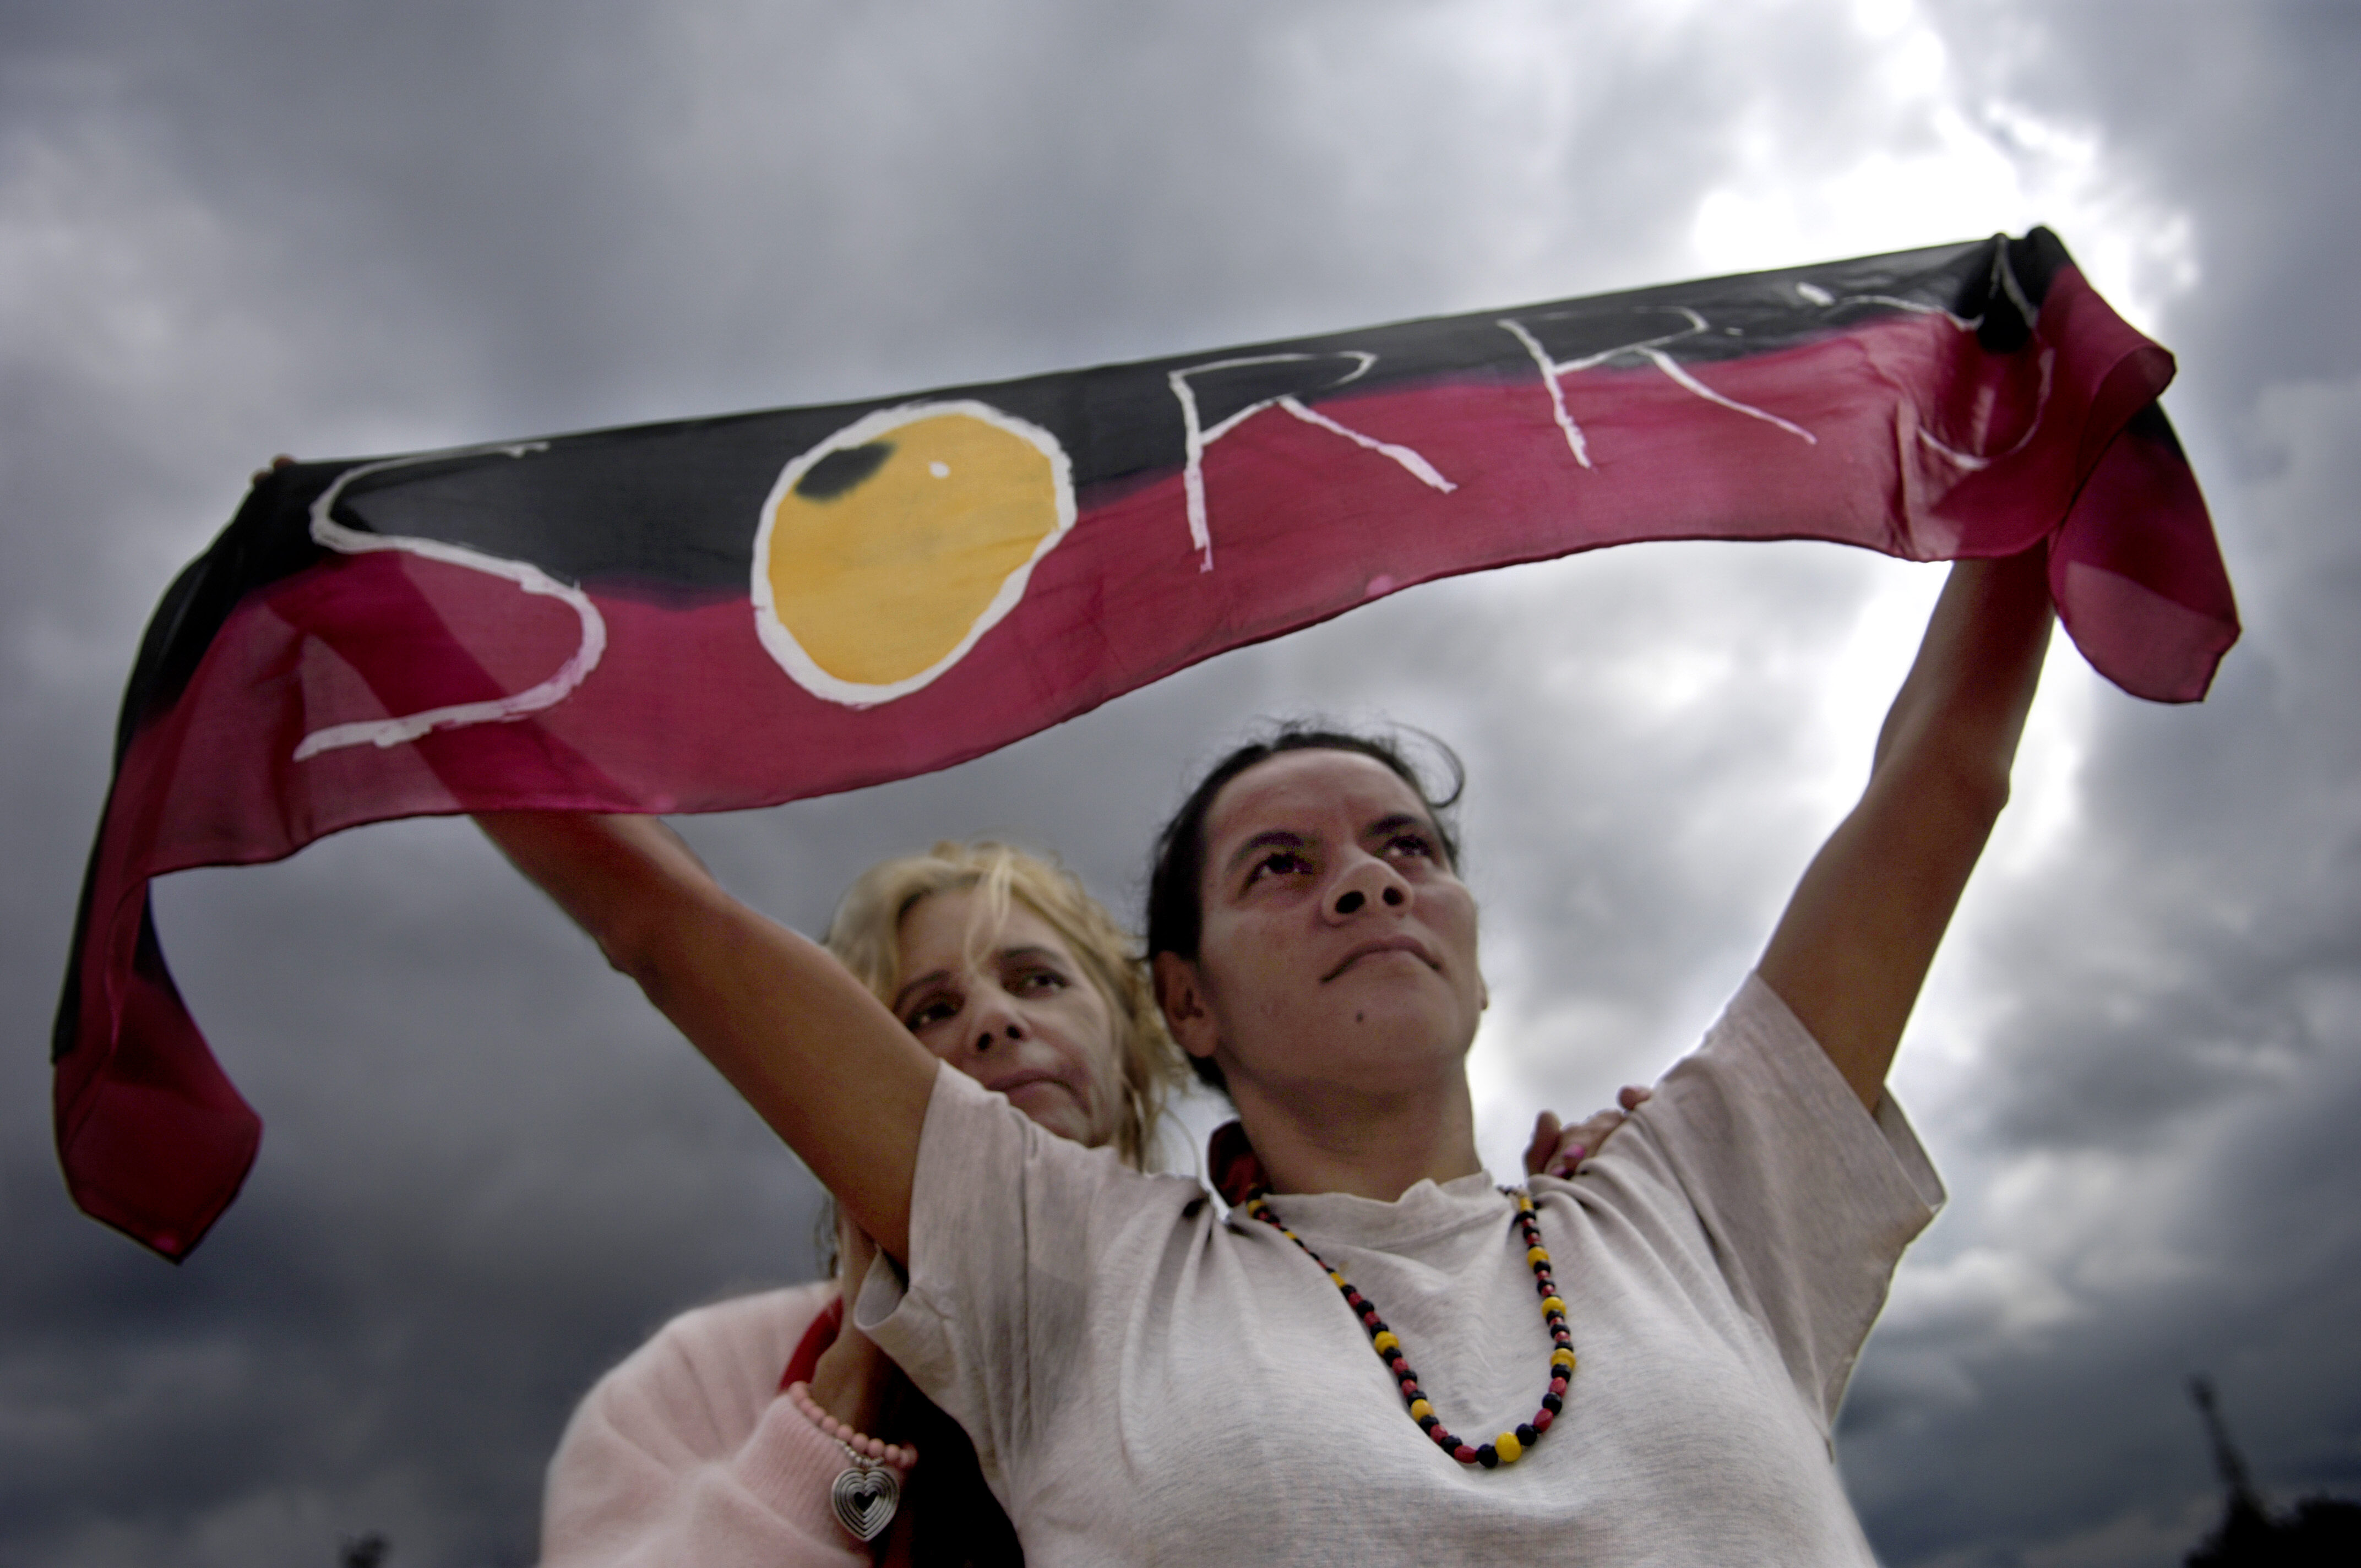 Rhonda Randall and Sharon Mumbler stand proud with their  Sorry  scarf as  Kevin Rudd's Broadcast apology to Aboriginal Peoples of Australia at Penrith Council on February 13, 2008 in Penrith, Australia.